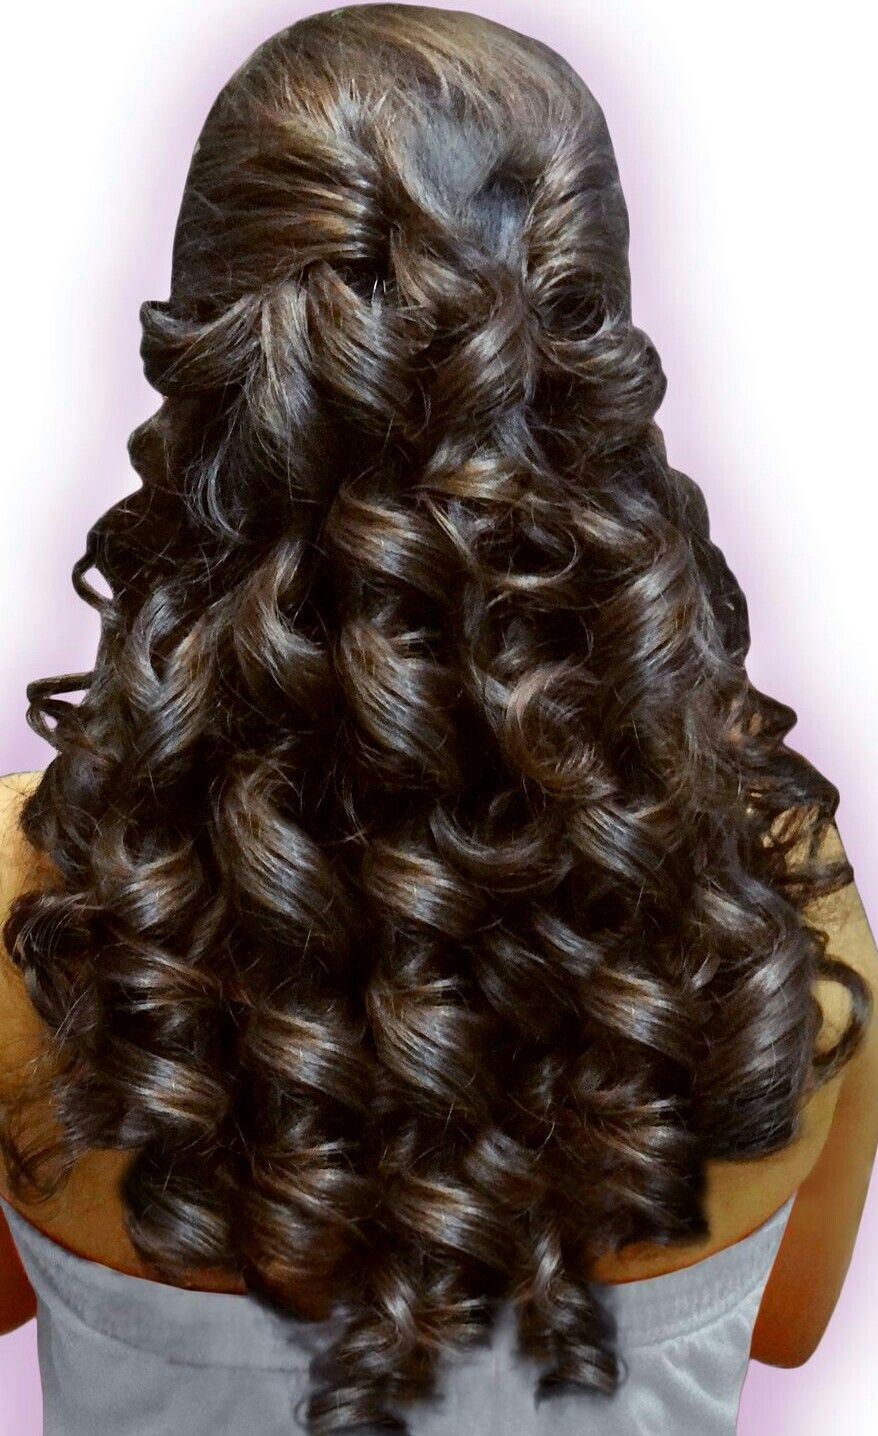 Pin by Her Cuck on CURLS  Pinterest  Curly hairstyles Curly and